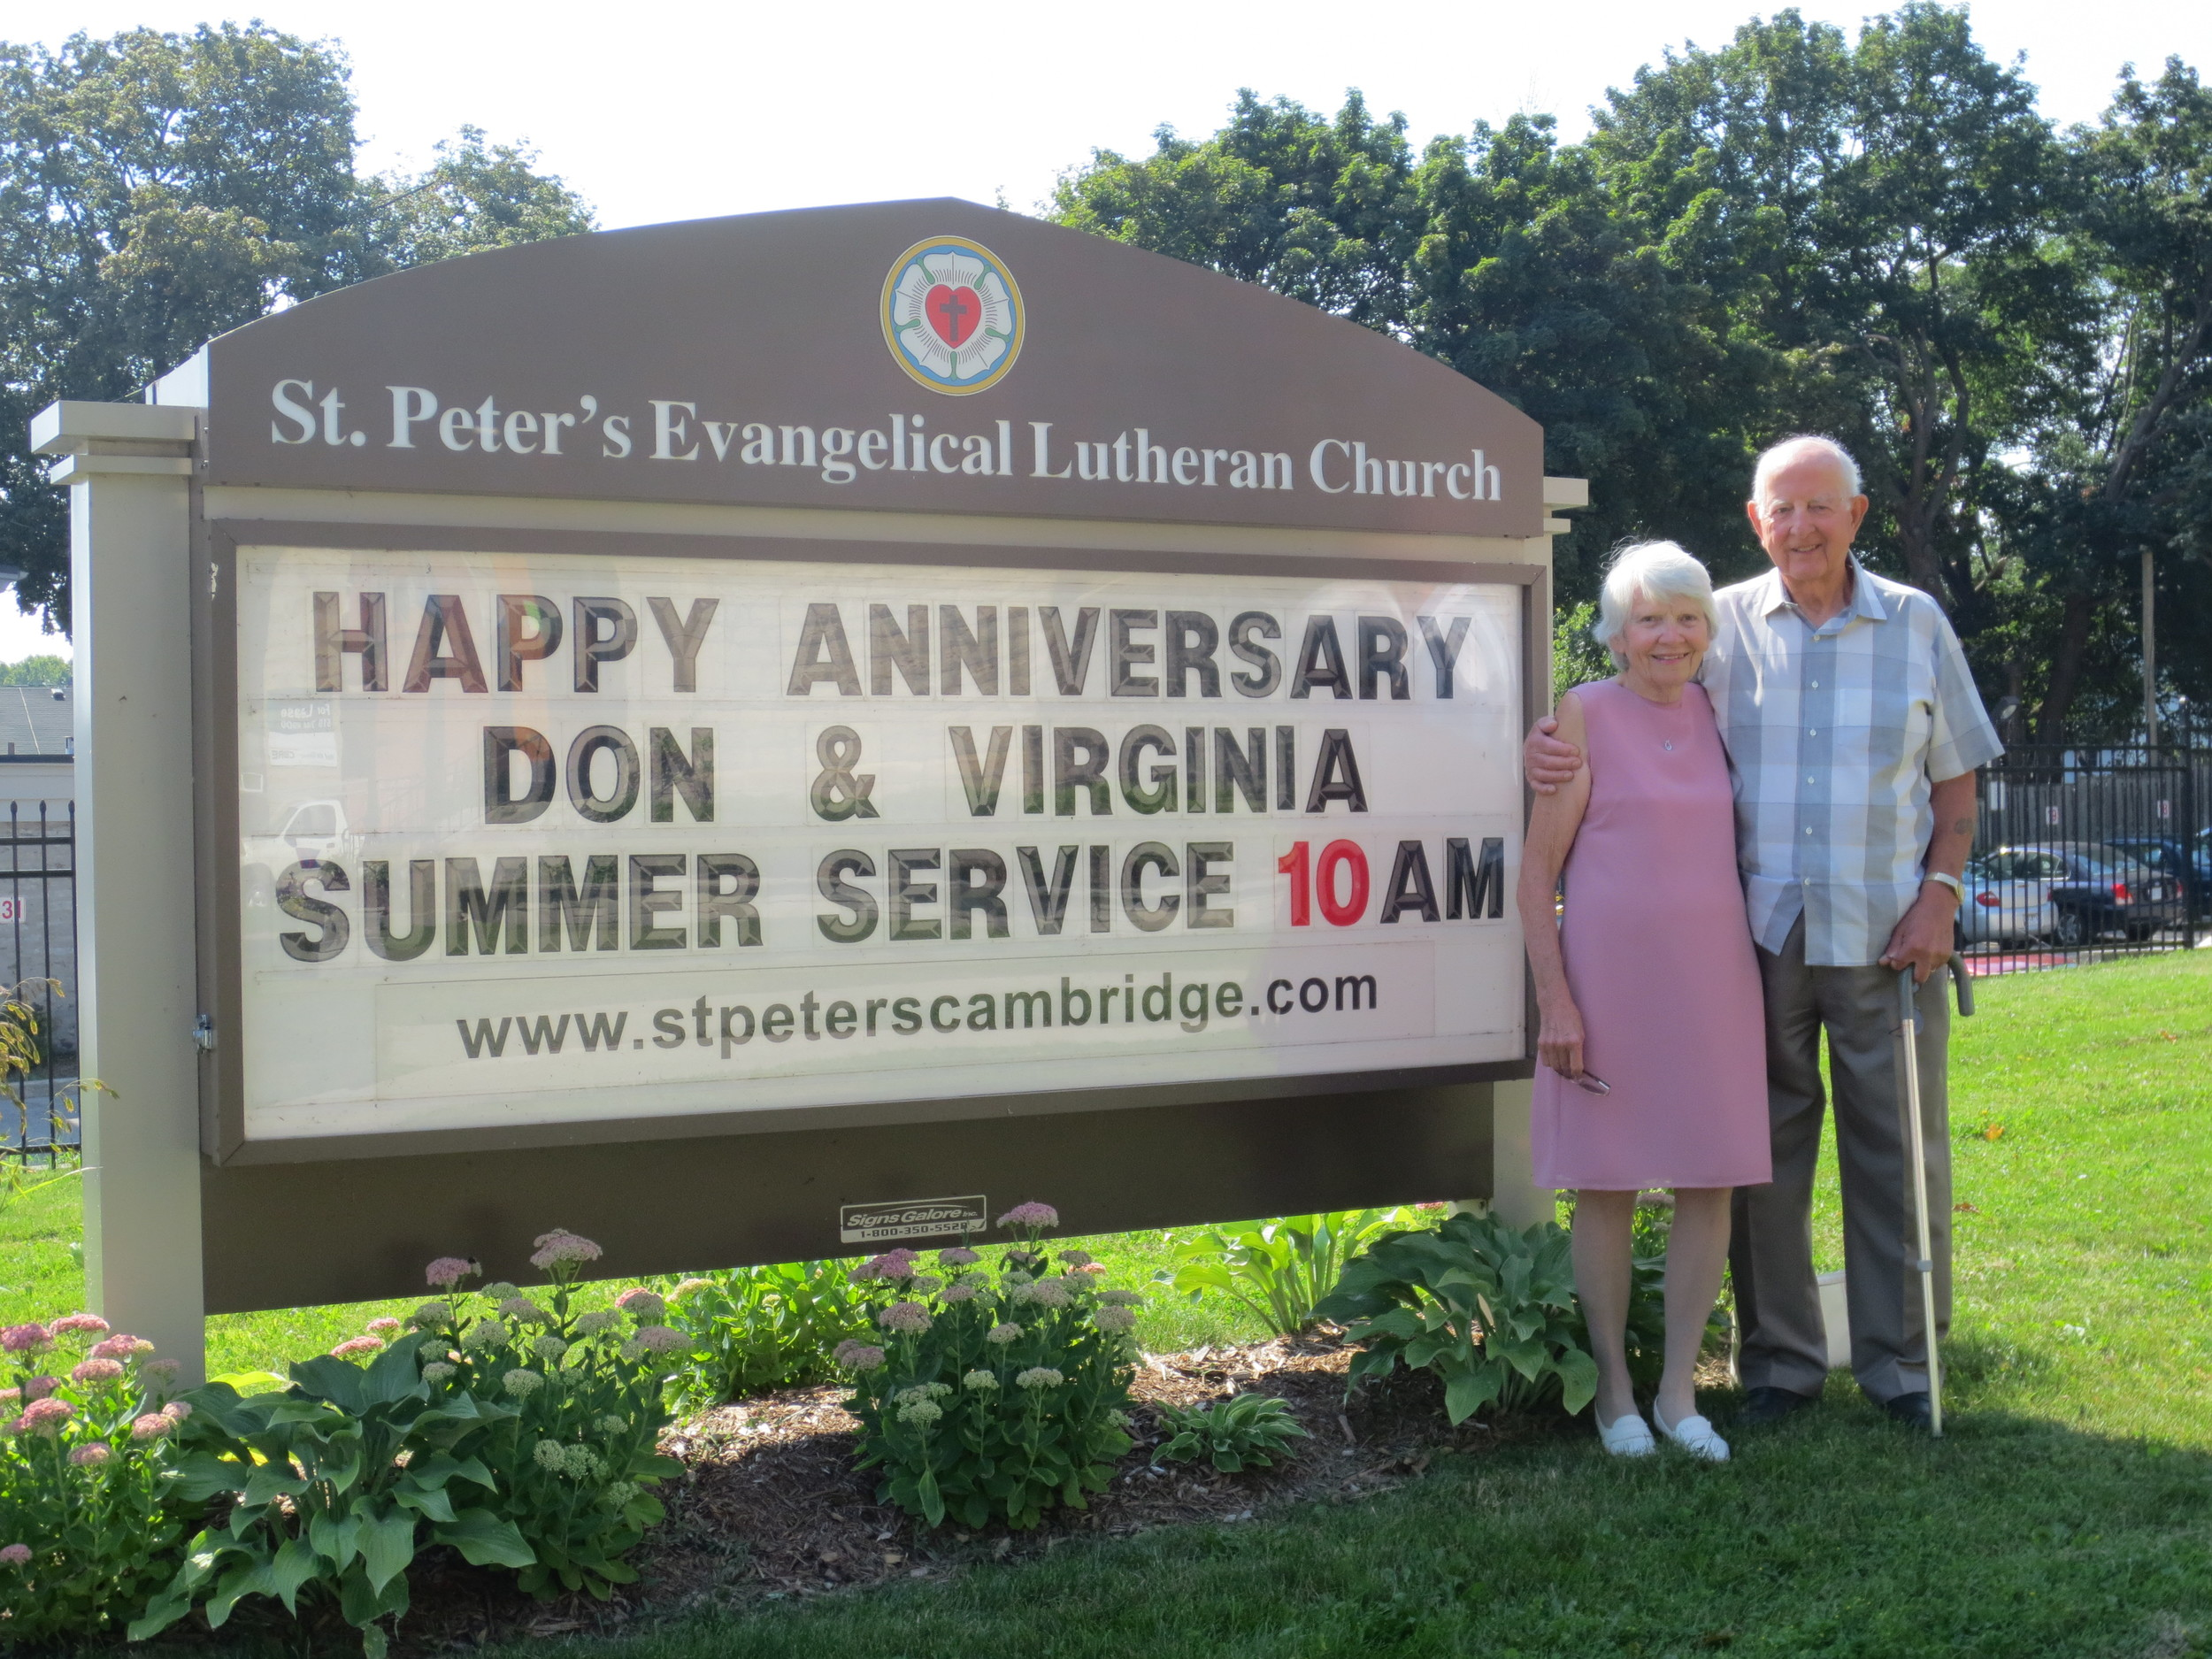 Happy 62nd wedding anniversary to Virginia and Don Davidson. They were married August 18, 1951. God bless you both.